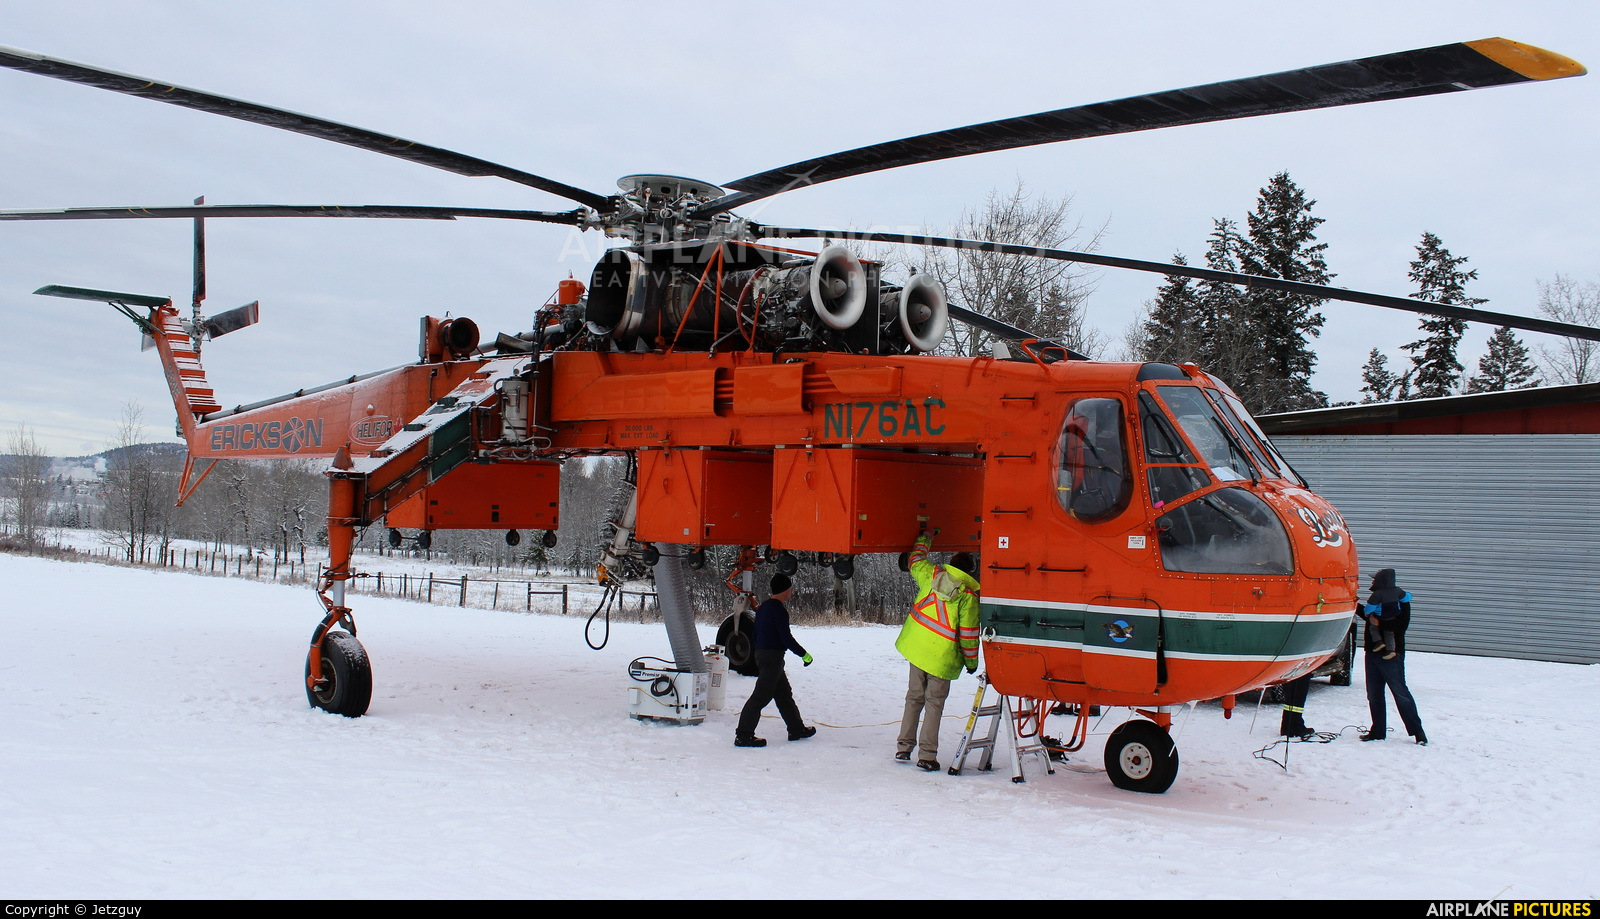 Erickson Air-Crane N176AC aircraft at 100 Mile House, BC